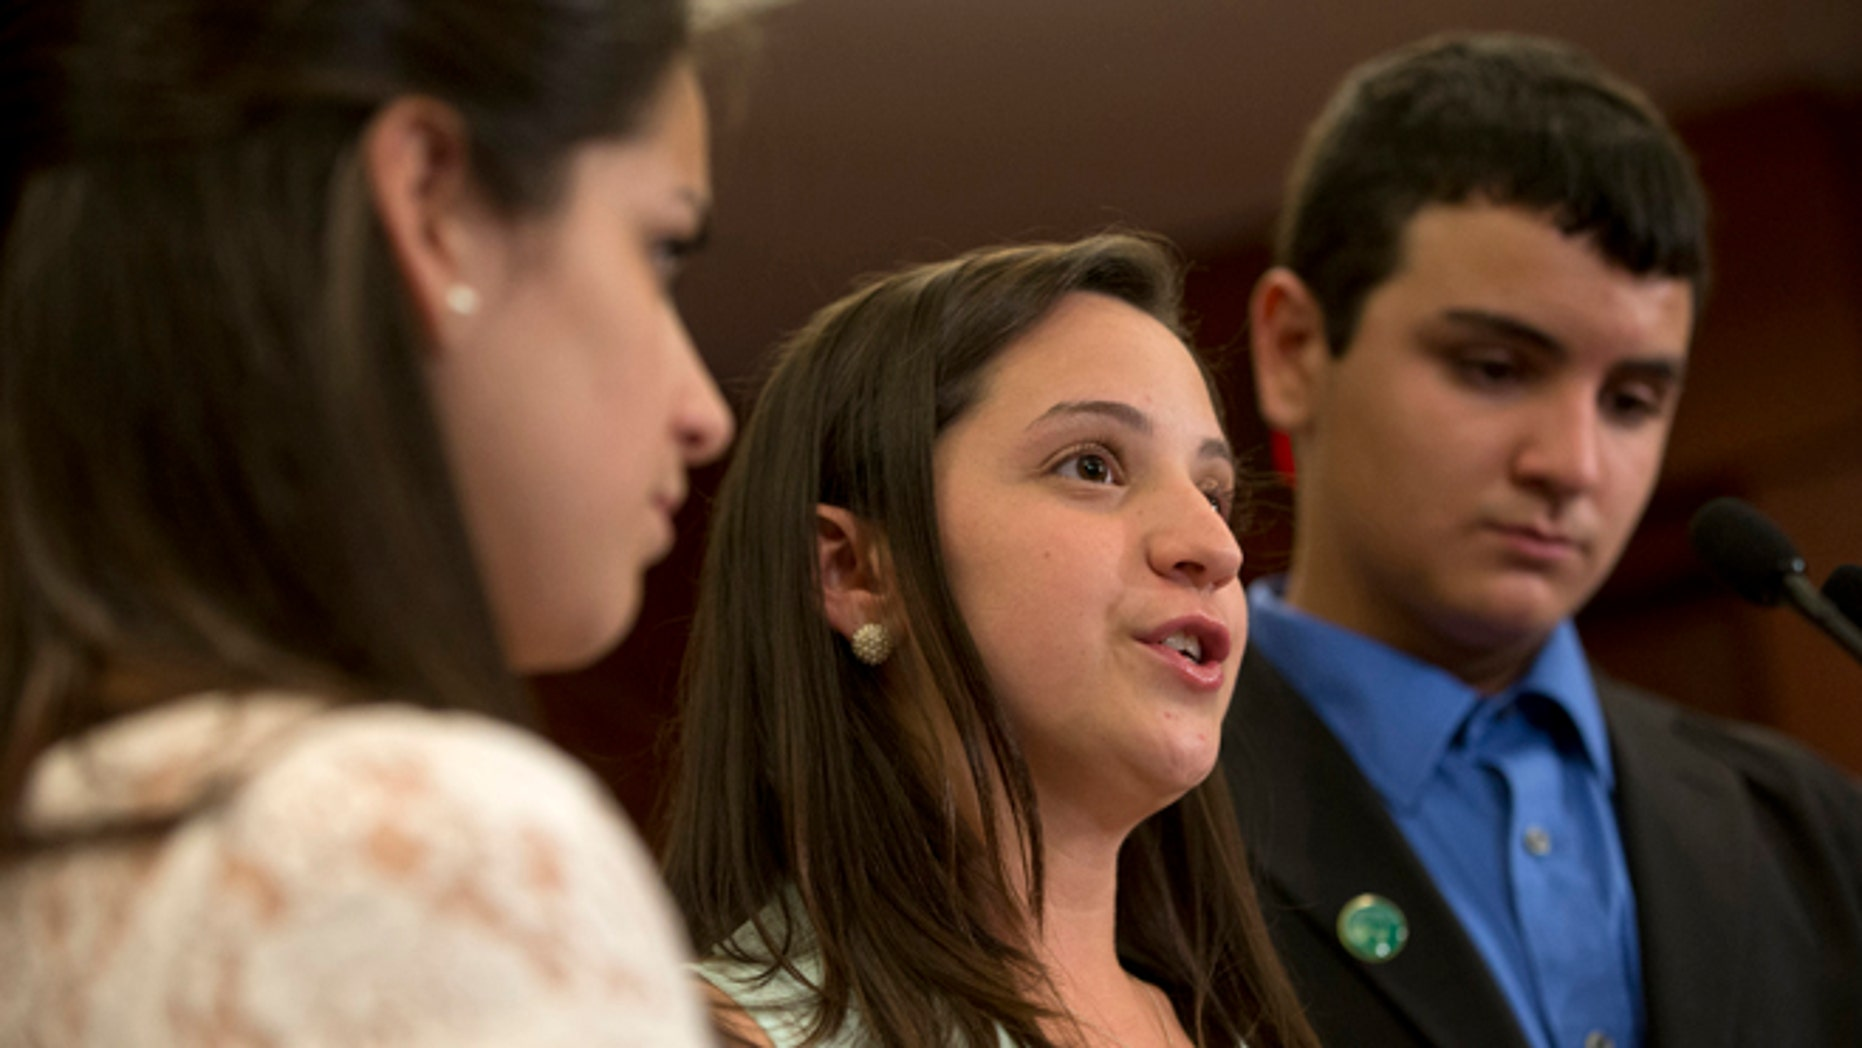 FILE - In a Thursday, June 13, 2013 file photo, Jillian Soto, center, with sister Carlee Soto, left and brother Carlos Soto, the siblings of Victoria Soto, speaks during a news conference on Capitol Hill in Washington, on the sixth month anniversary of the Newtown, Conn. shootings. The family of Victoria Soto, who was killed in the Sandy Hook school massacre, has applied to trademark her name in an attempt to stop others from misusing it on social media. (AP Photo/Jacquelyn Martin, File)